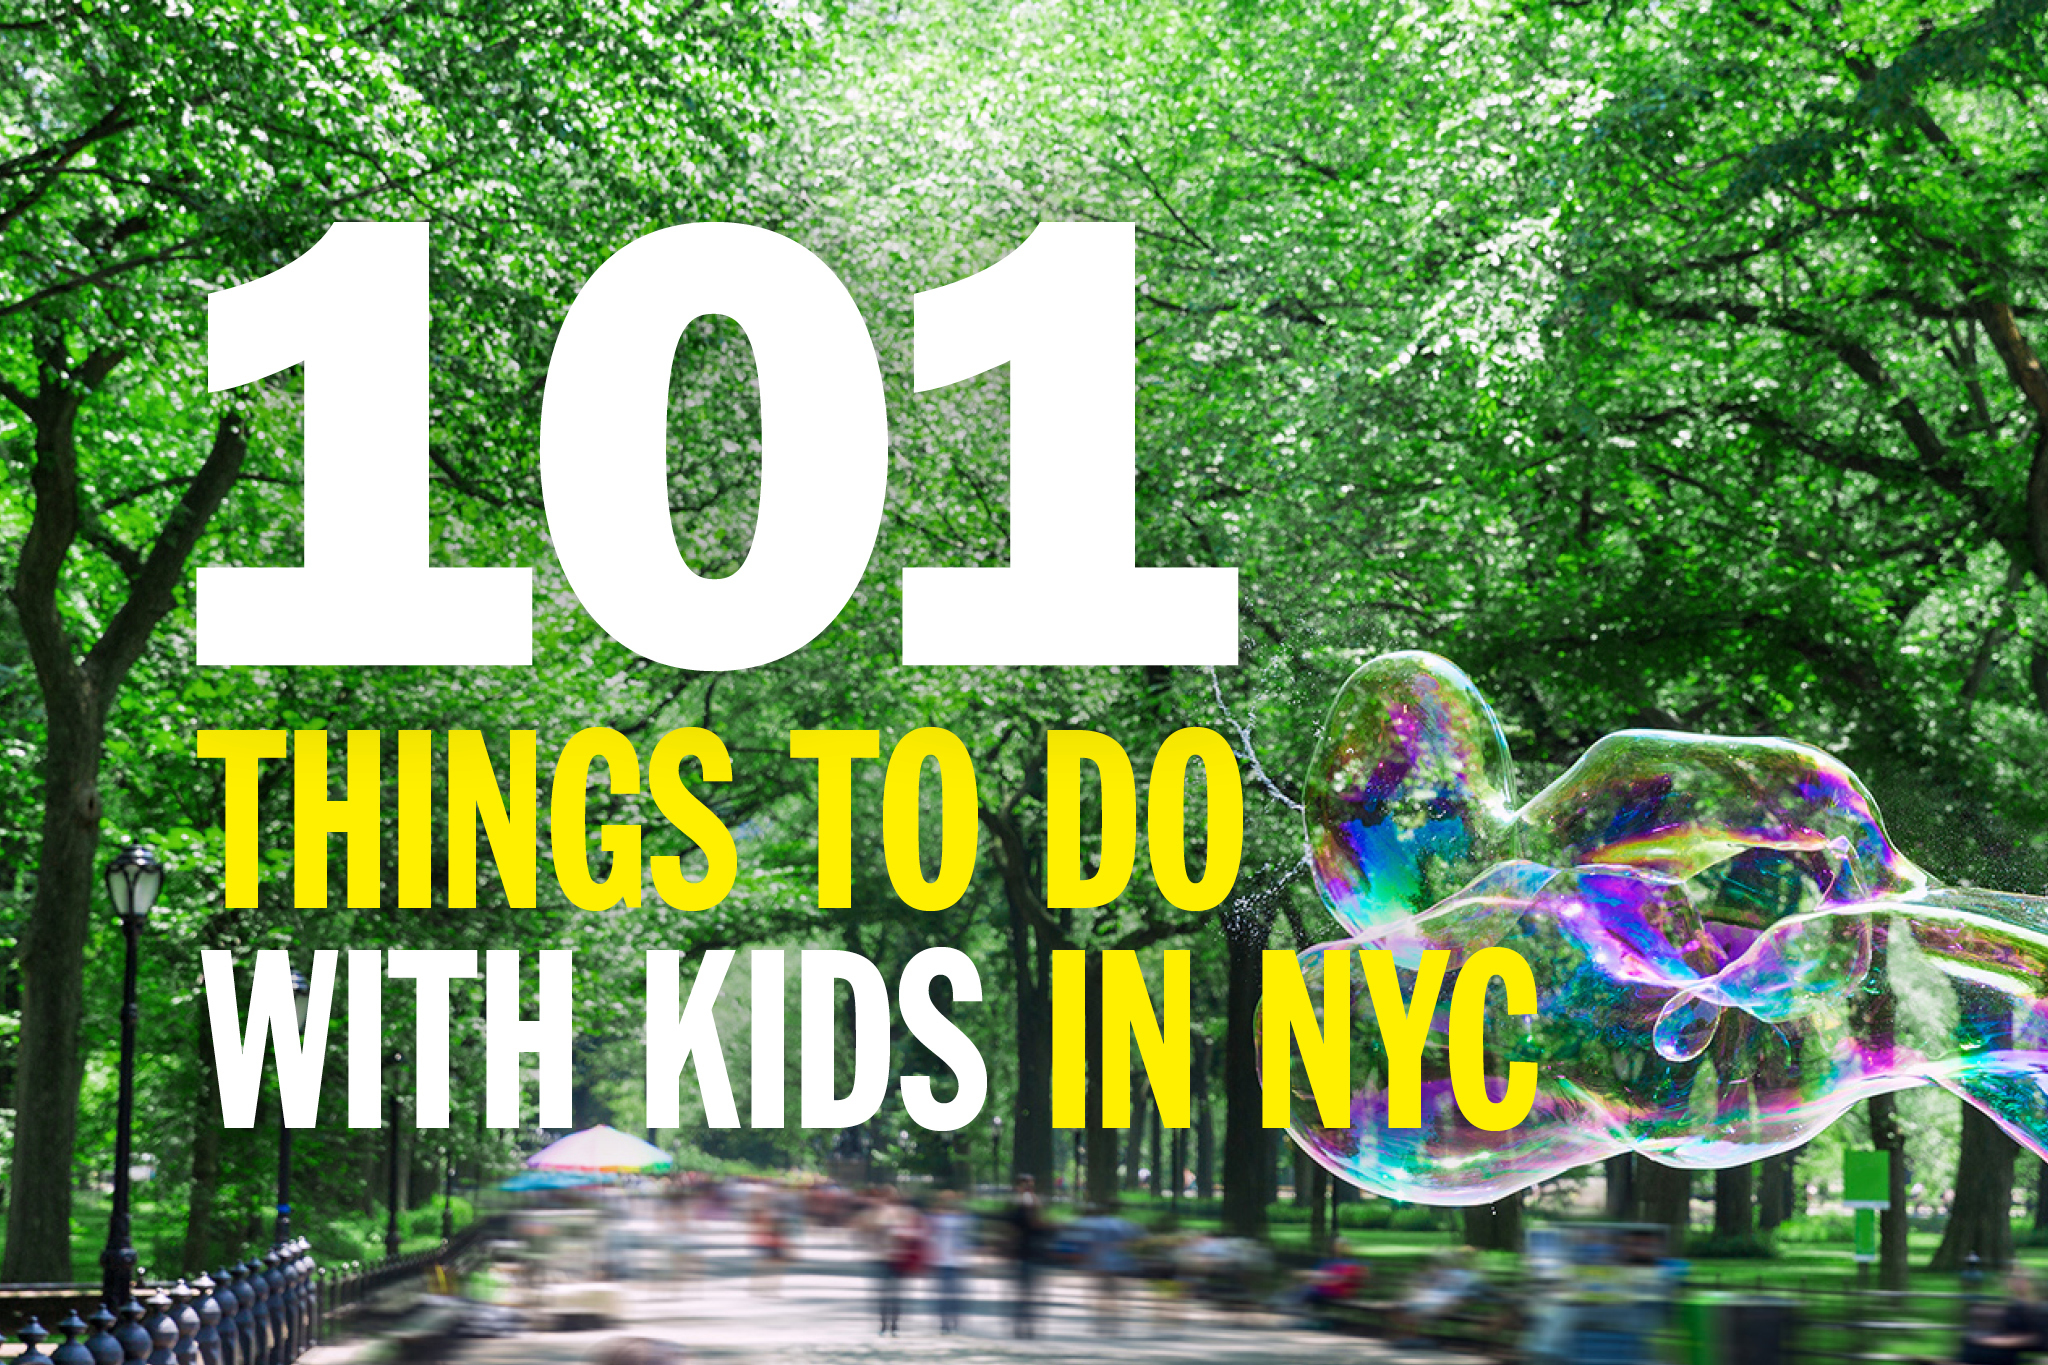 Best farmers market nyc picks for kids and families for Top things to do in nyc with kids